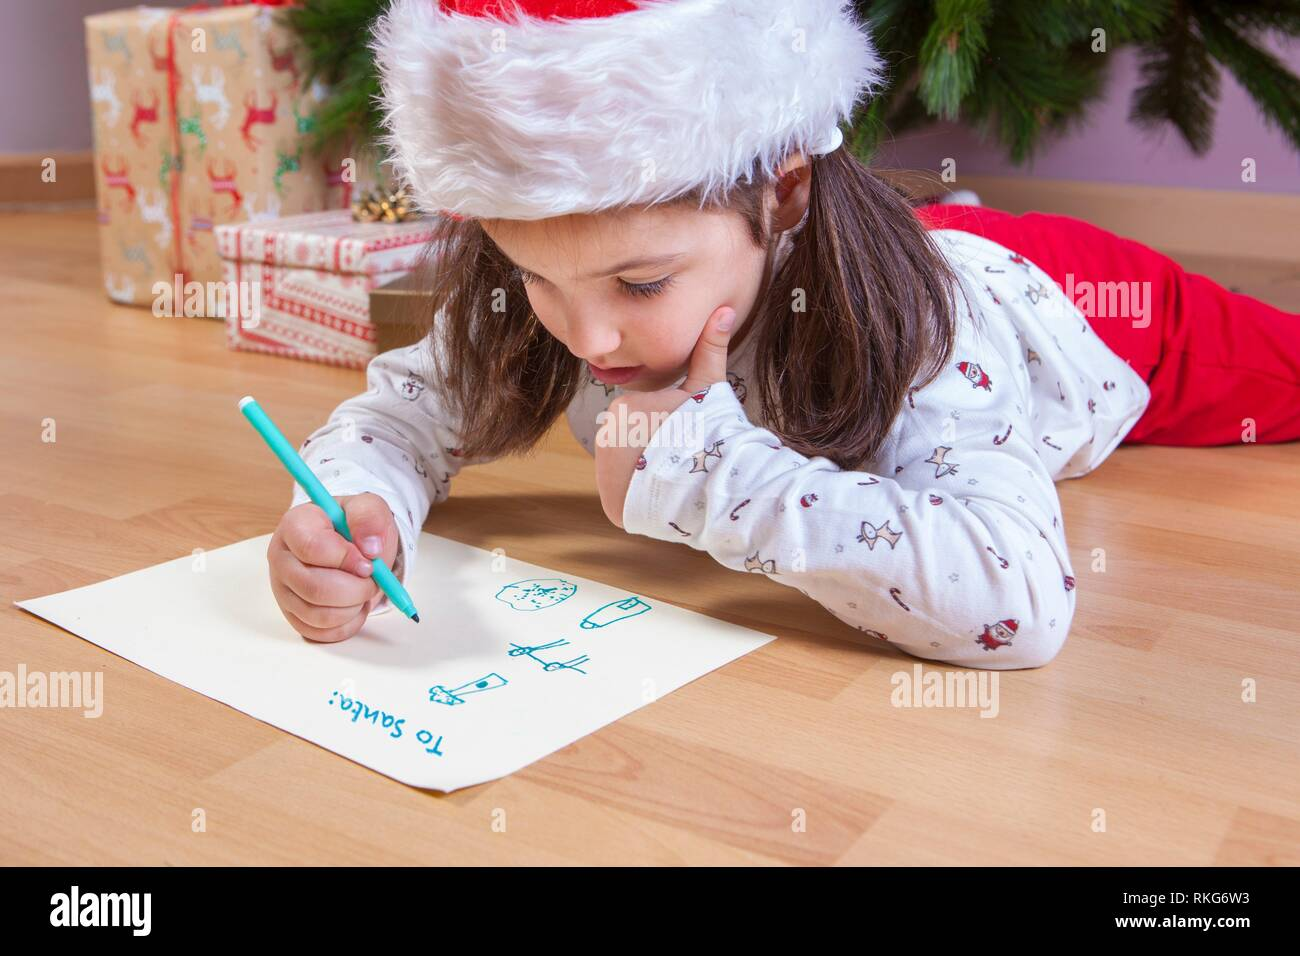 Little girl preparing The Santa Letter. She painting a sheet with header in English. Stock Photo